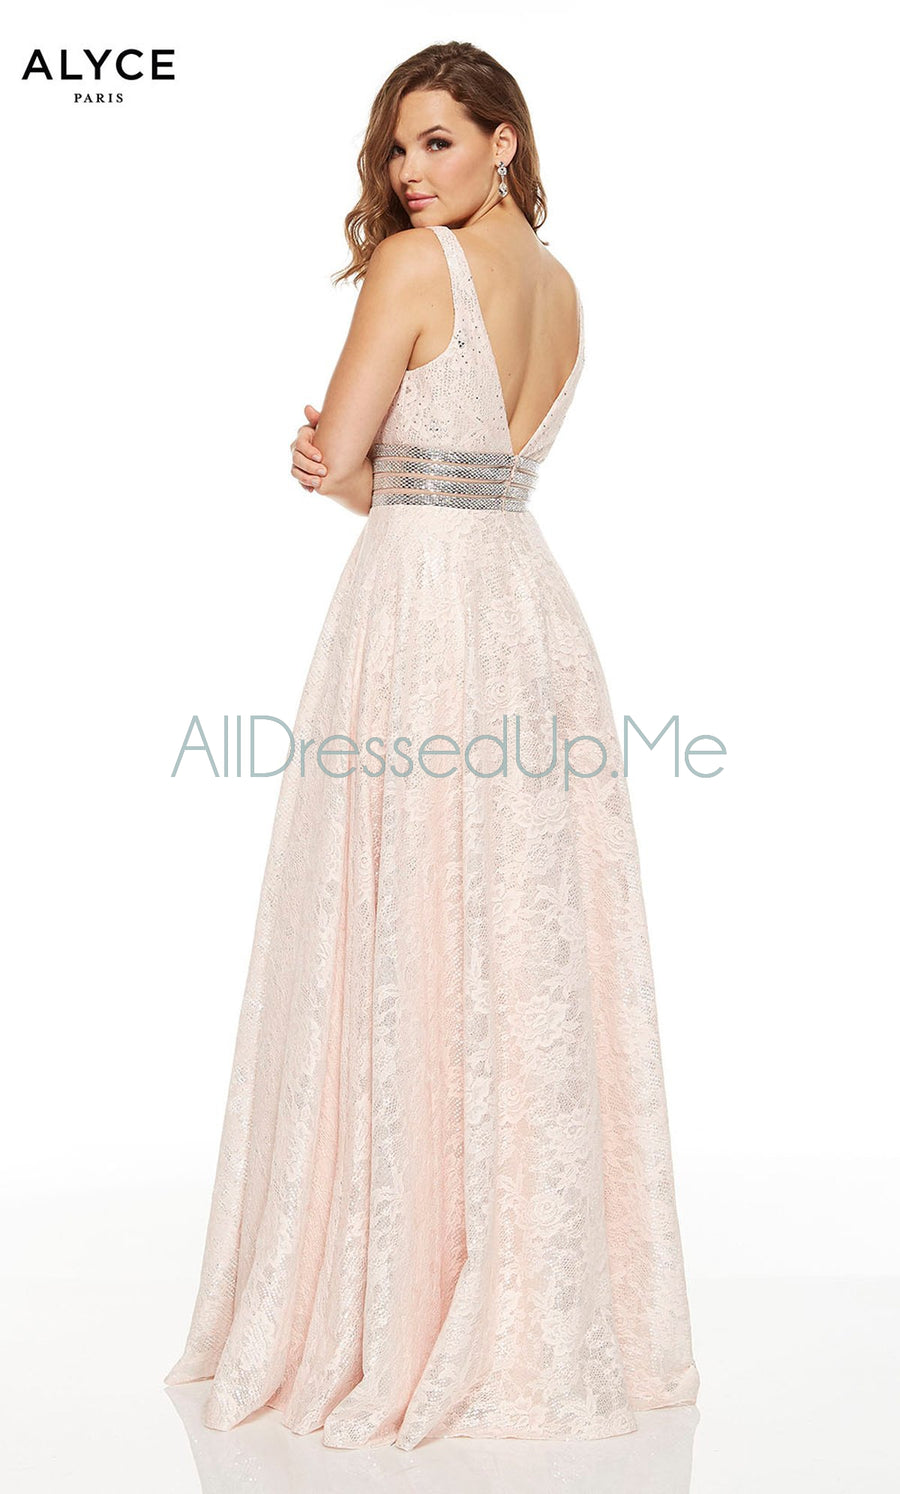 Alyce Paris - 60757 - All Dressed Up, Prom/Party Dress - - Dresses Two Piece Cut Out Sweetheart Halter Low Back High Neck Print Beaded Chiffon Jersey Fitted Sexy Satin Lace Jeweled Sparkle Shimmer Sleeveless Stunning Gorgeous Modest See Through Transparent Glitter Special Occasions Event Chattanooga Hixson Shops Boutiques Tennessee TN Georgia GA MSRP Lowest Prices Sale Discount